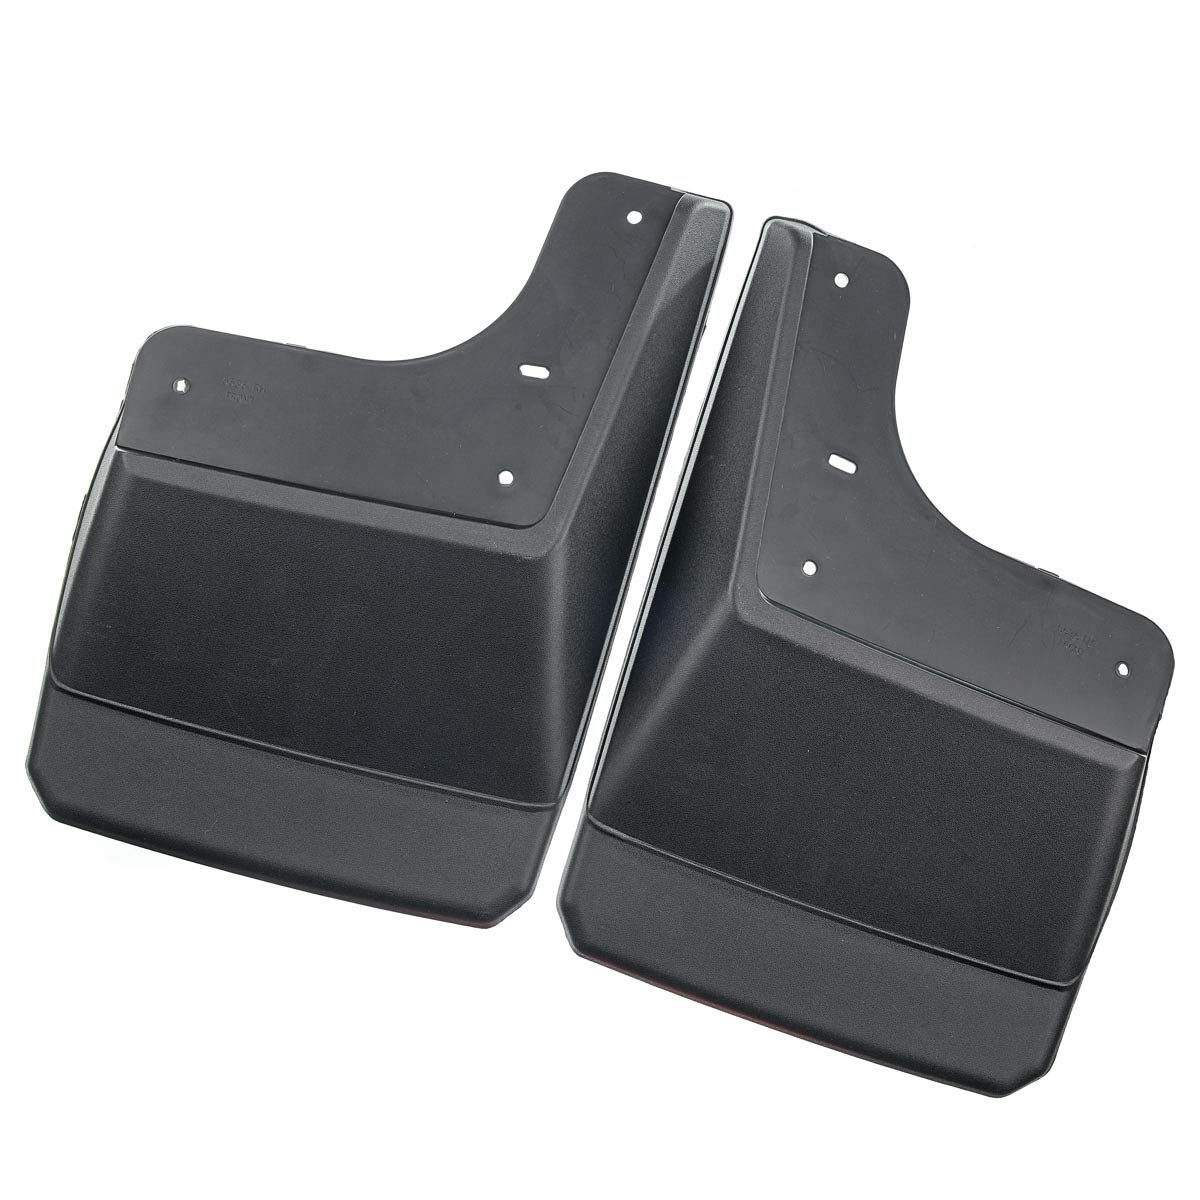 A-Premium Splash Guard Mud Flaps Mudflaps for Hummer H2 2003-2009 Front and Rear 4-PC Set